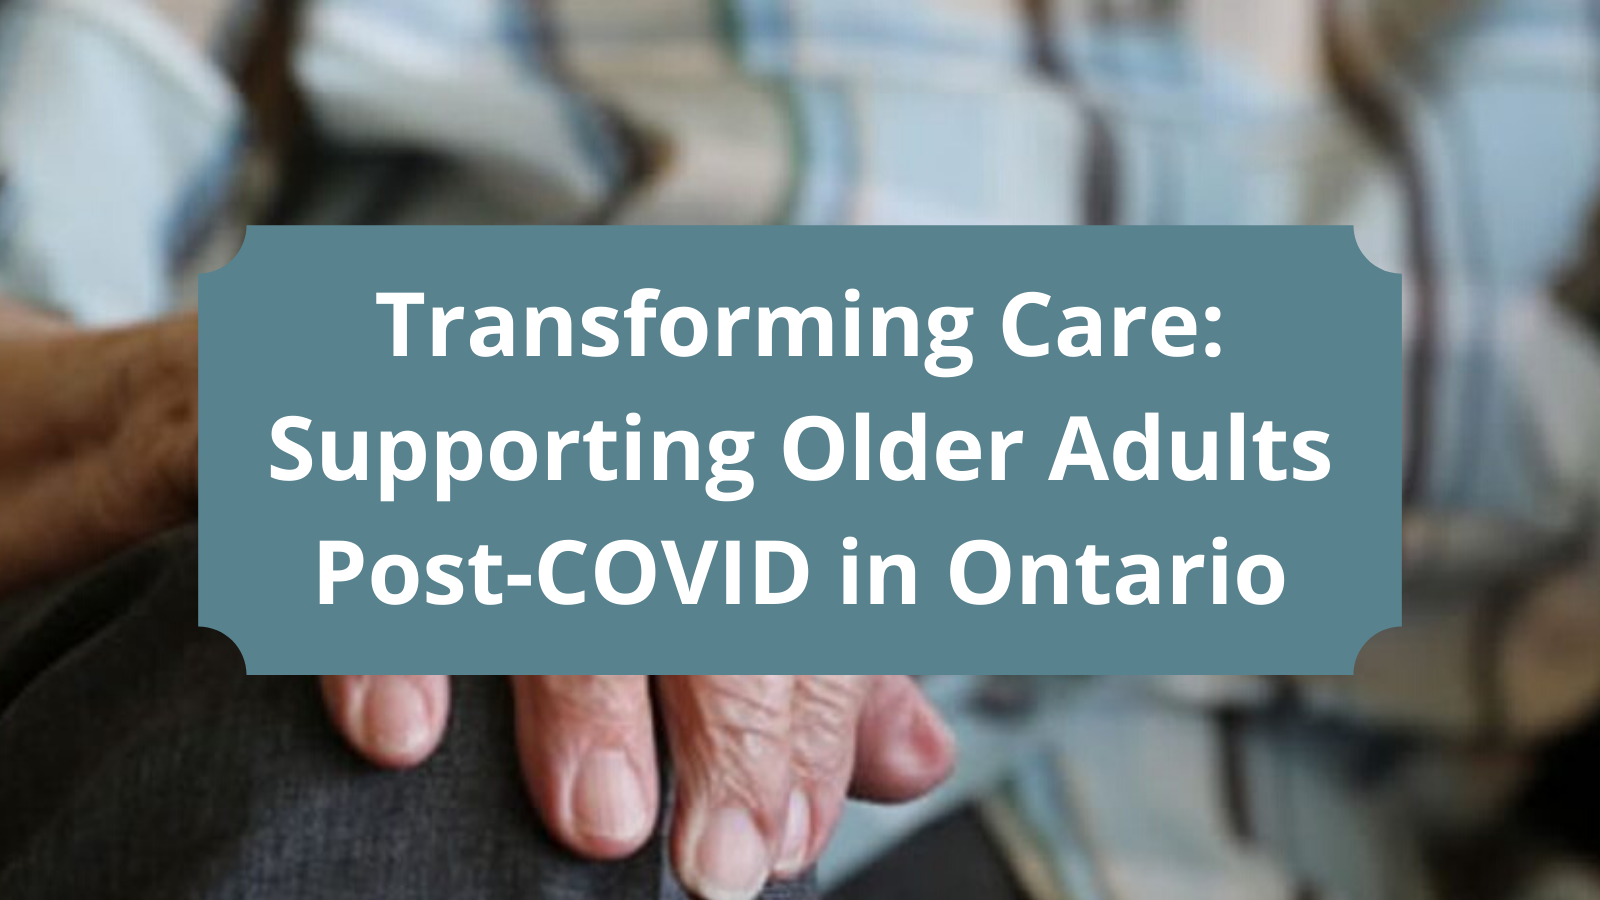 Traonsforming Care: Supporting Older Adults Post-COVID in Ontario